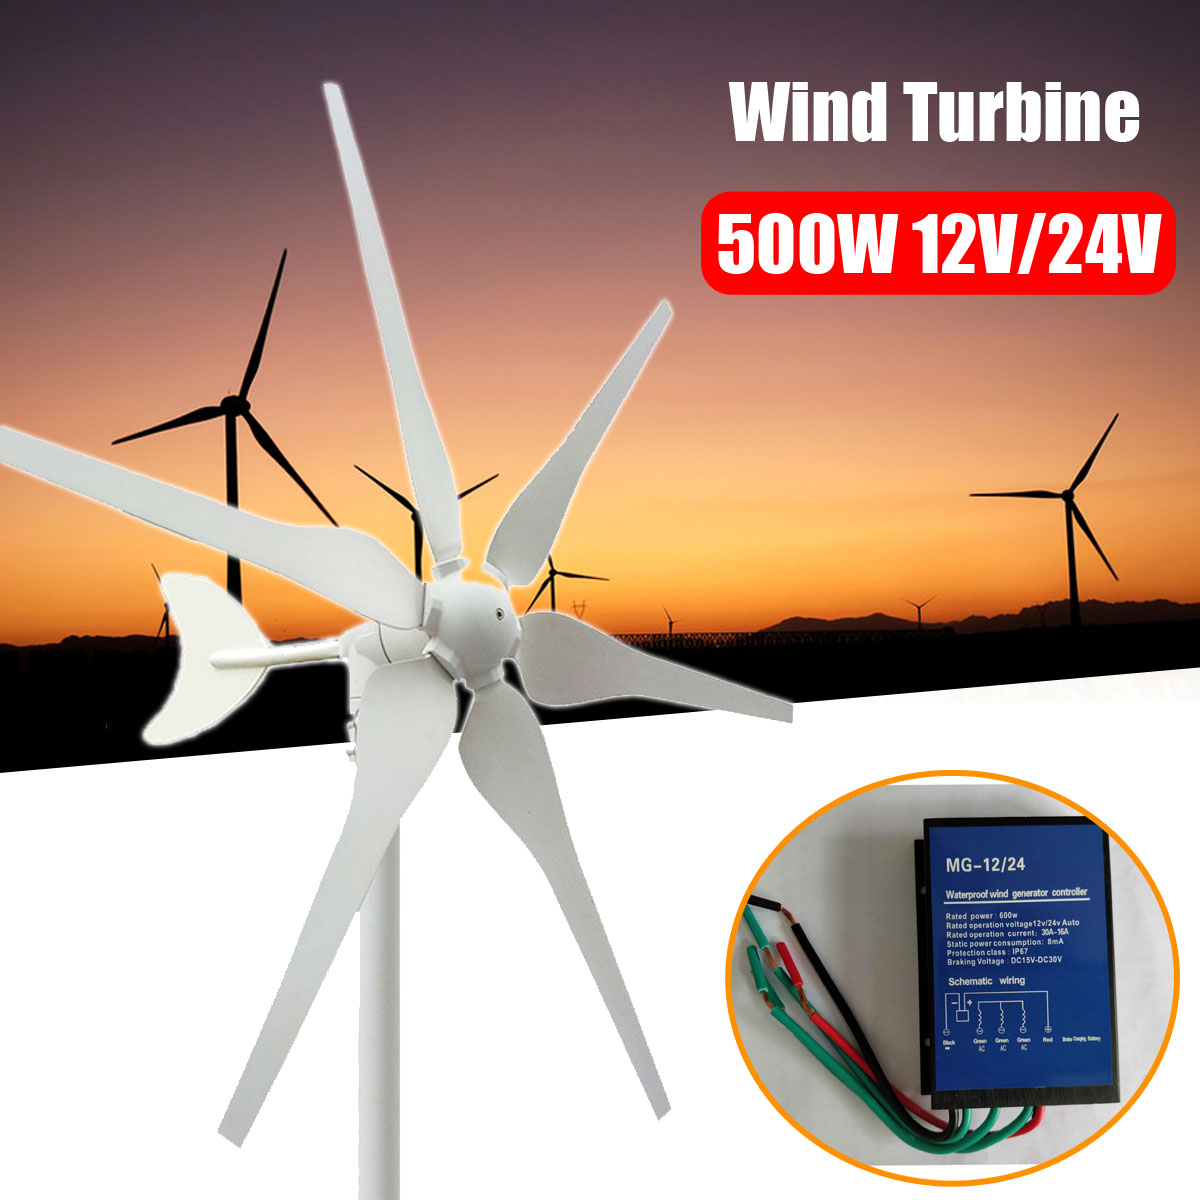 500W 12V/24V Environmental 6 Blades Mini Wind Turbines Energy Generator Miniature Wind Turbines Residential Home With Controller цена